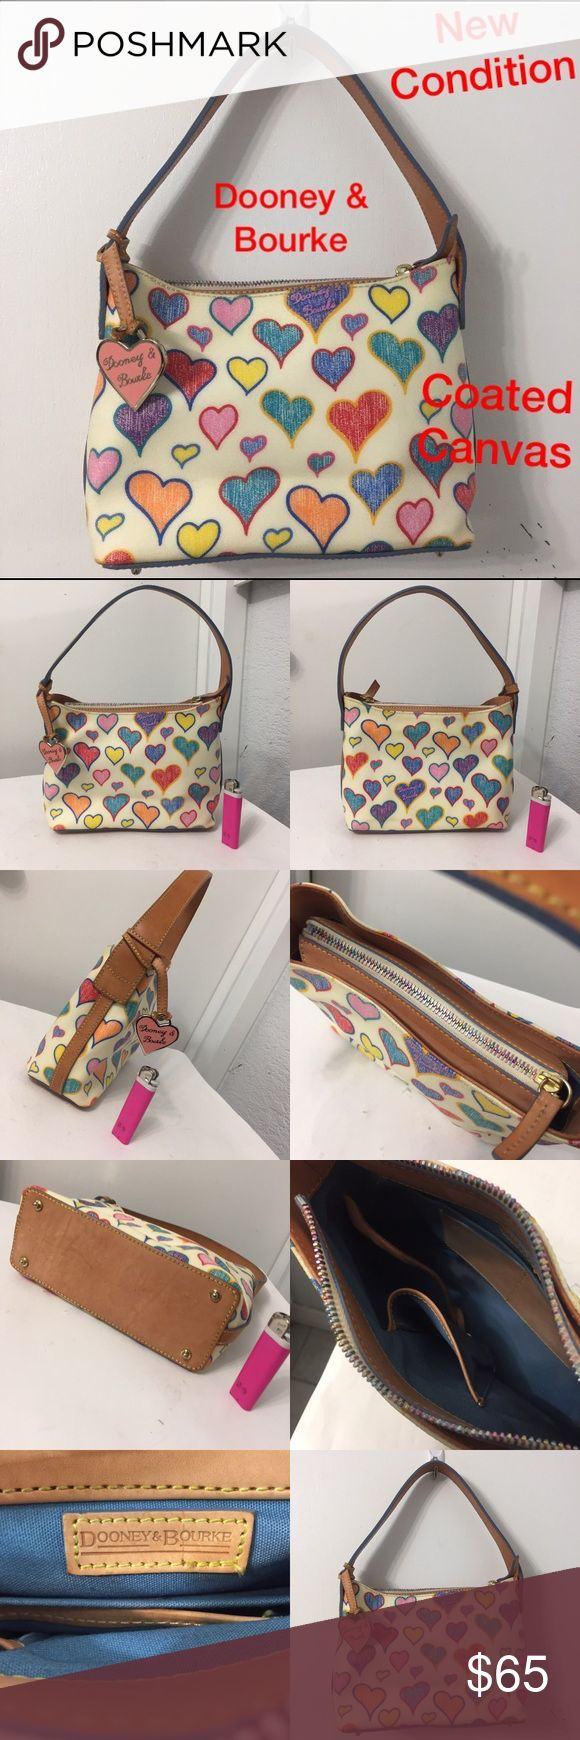 Dooney & Bourke coated canvas handbag Mint Condition. See photos Dooney & Bourke Bags Totes